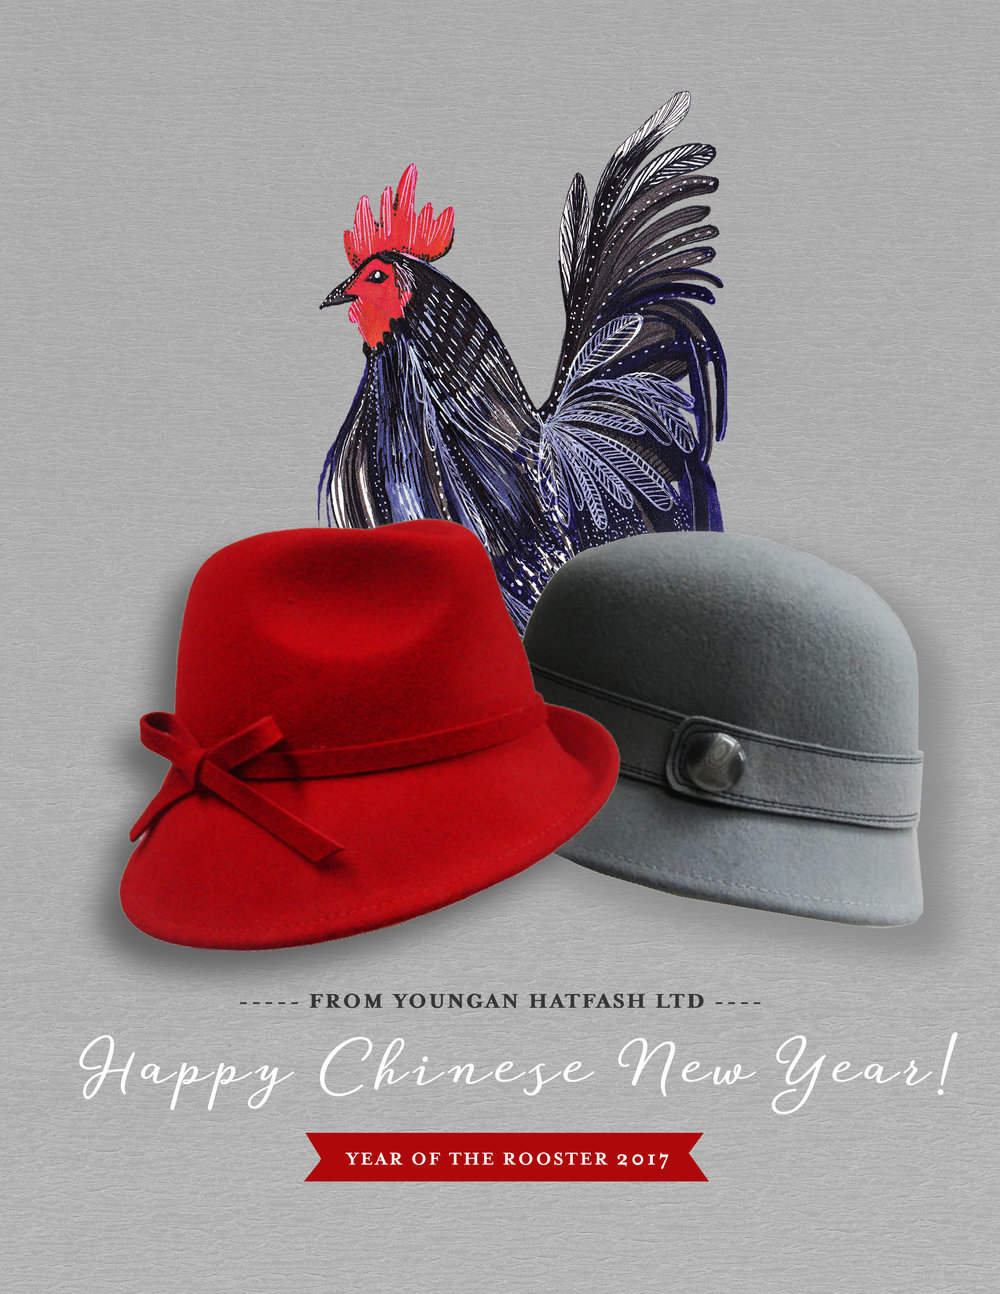 Hatfash Limited, TST, Hong Kong China. Hat Trading Company. Seasonal Email Campaign Ad